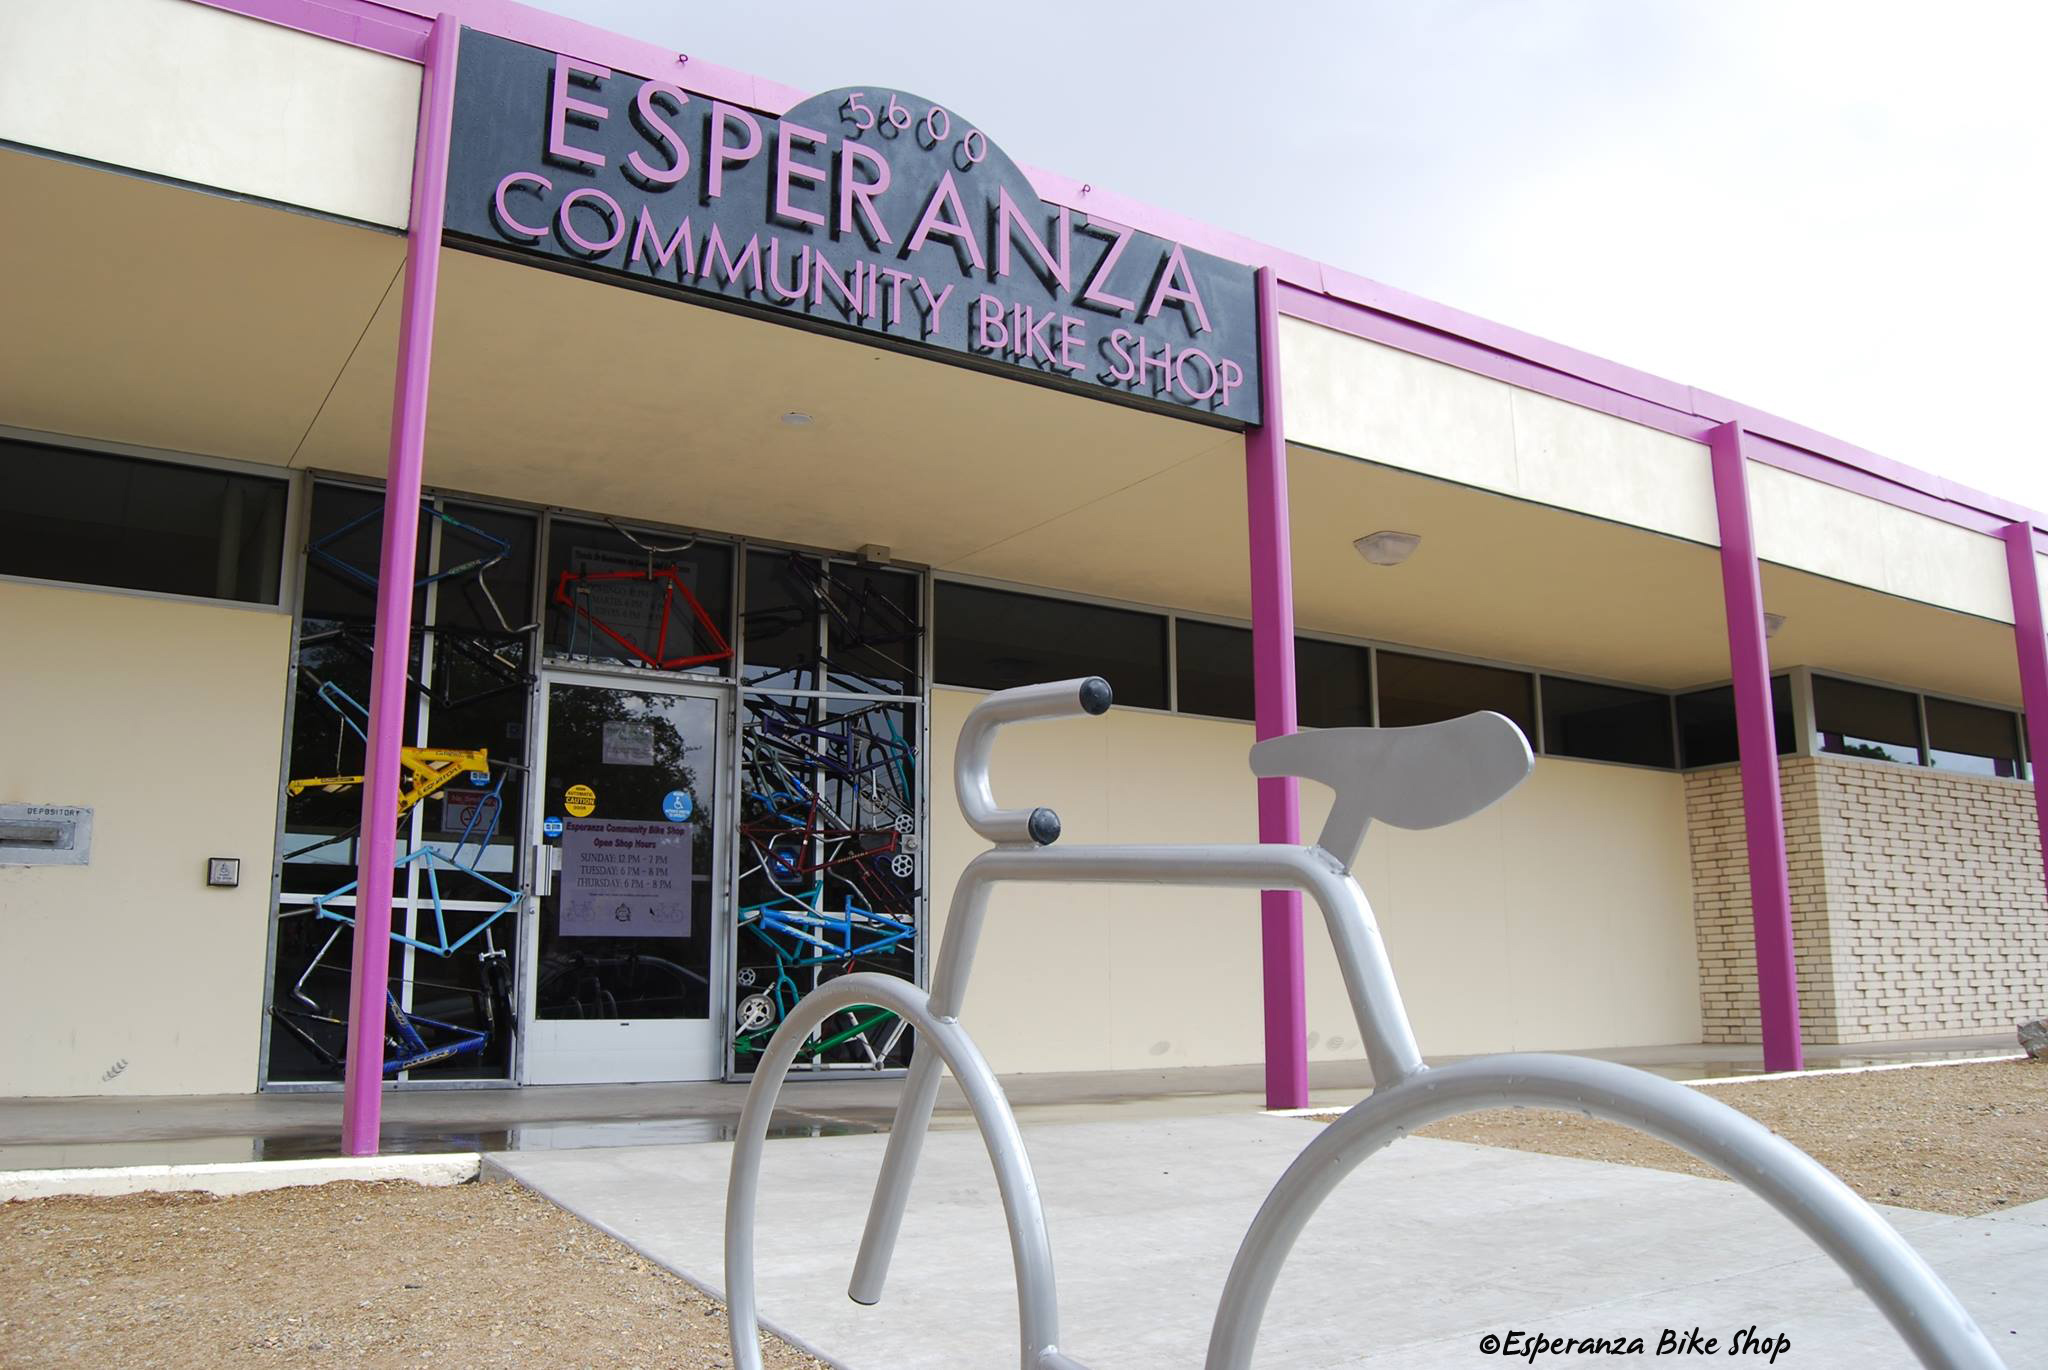 Esperanza Community Bike Shop in Albuquerque